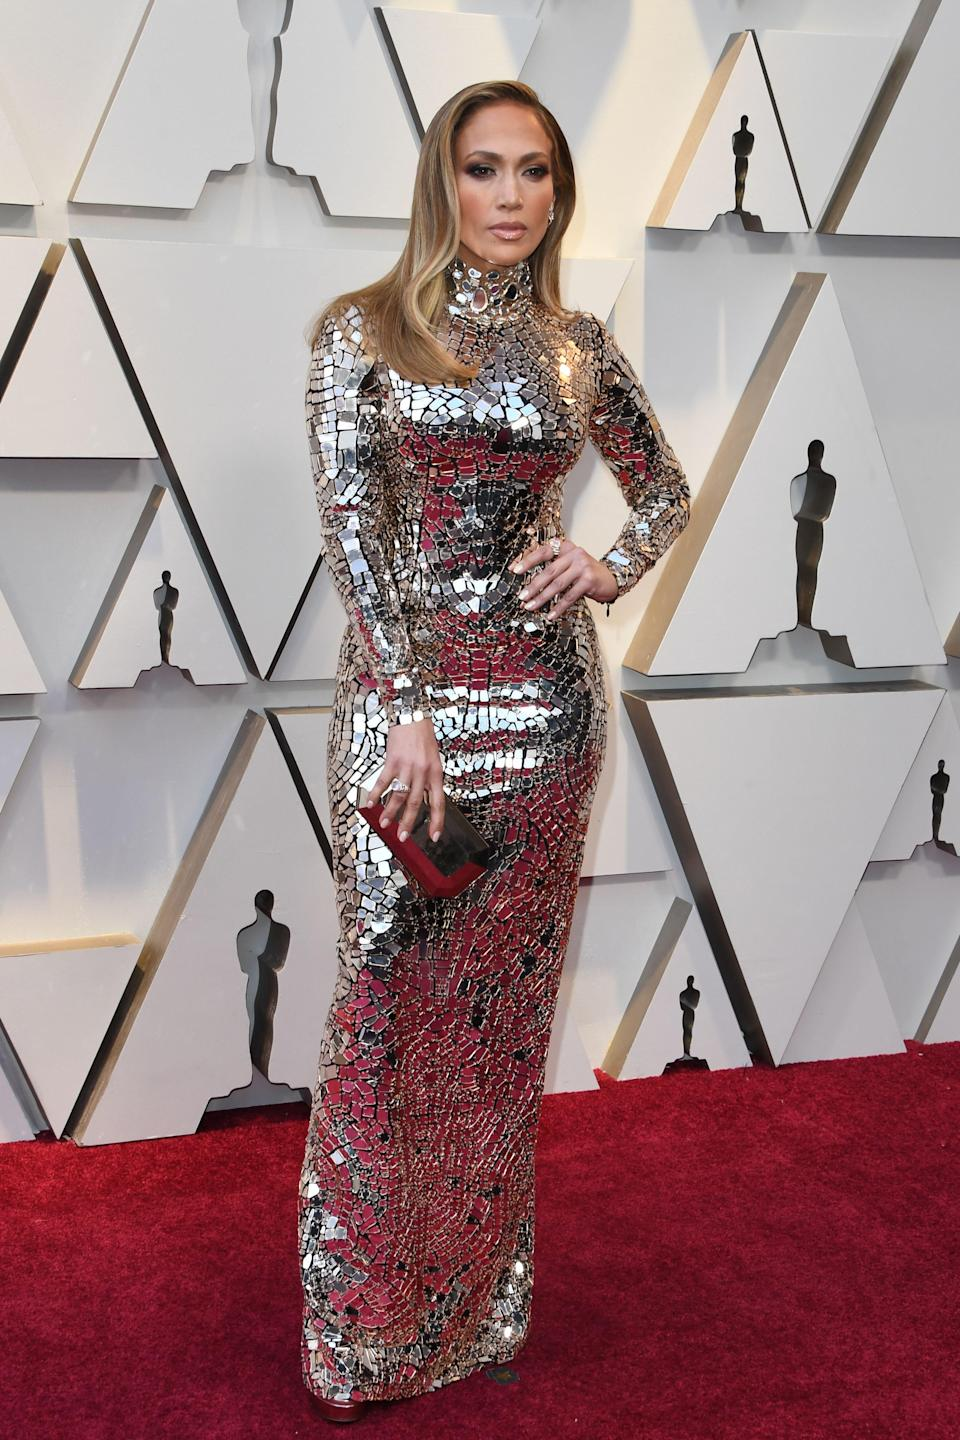 <p>J. Lo always brings the glamour – and tonight is no exception! The superstar shimmered on the red carpet in a silver gown by Tom Ford. (Image via Getty Images) </p>